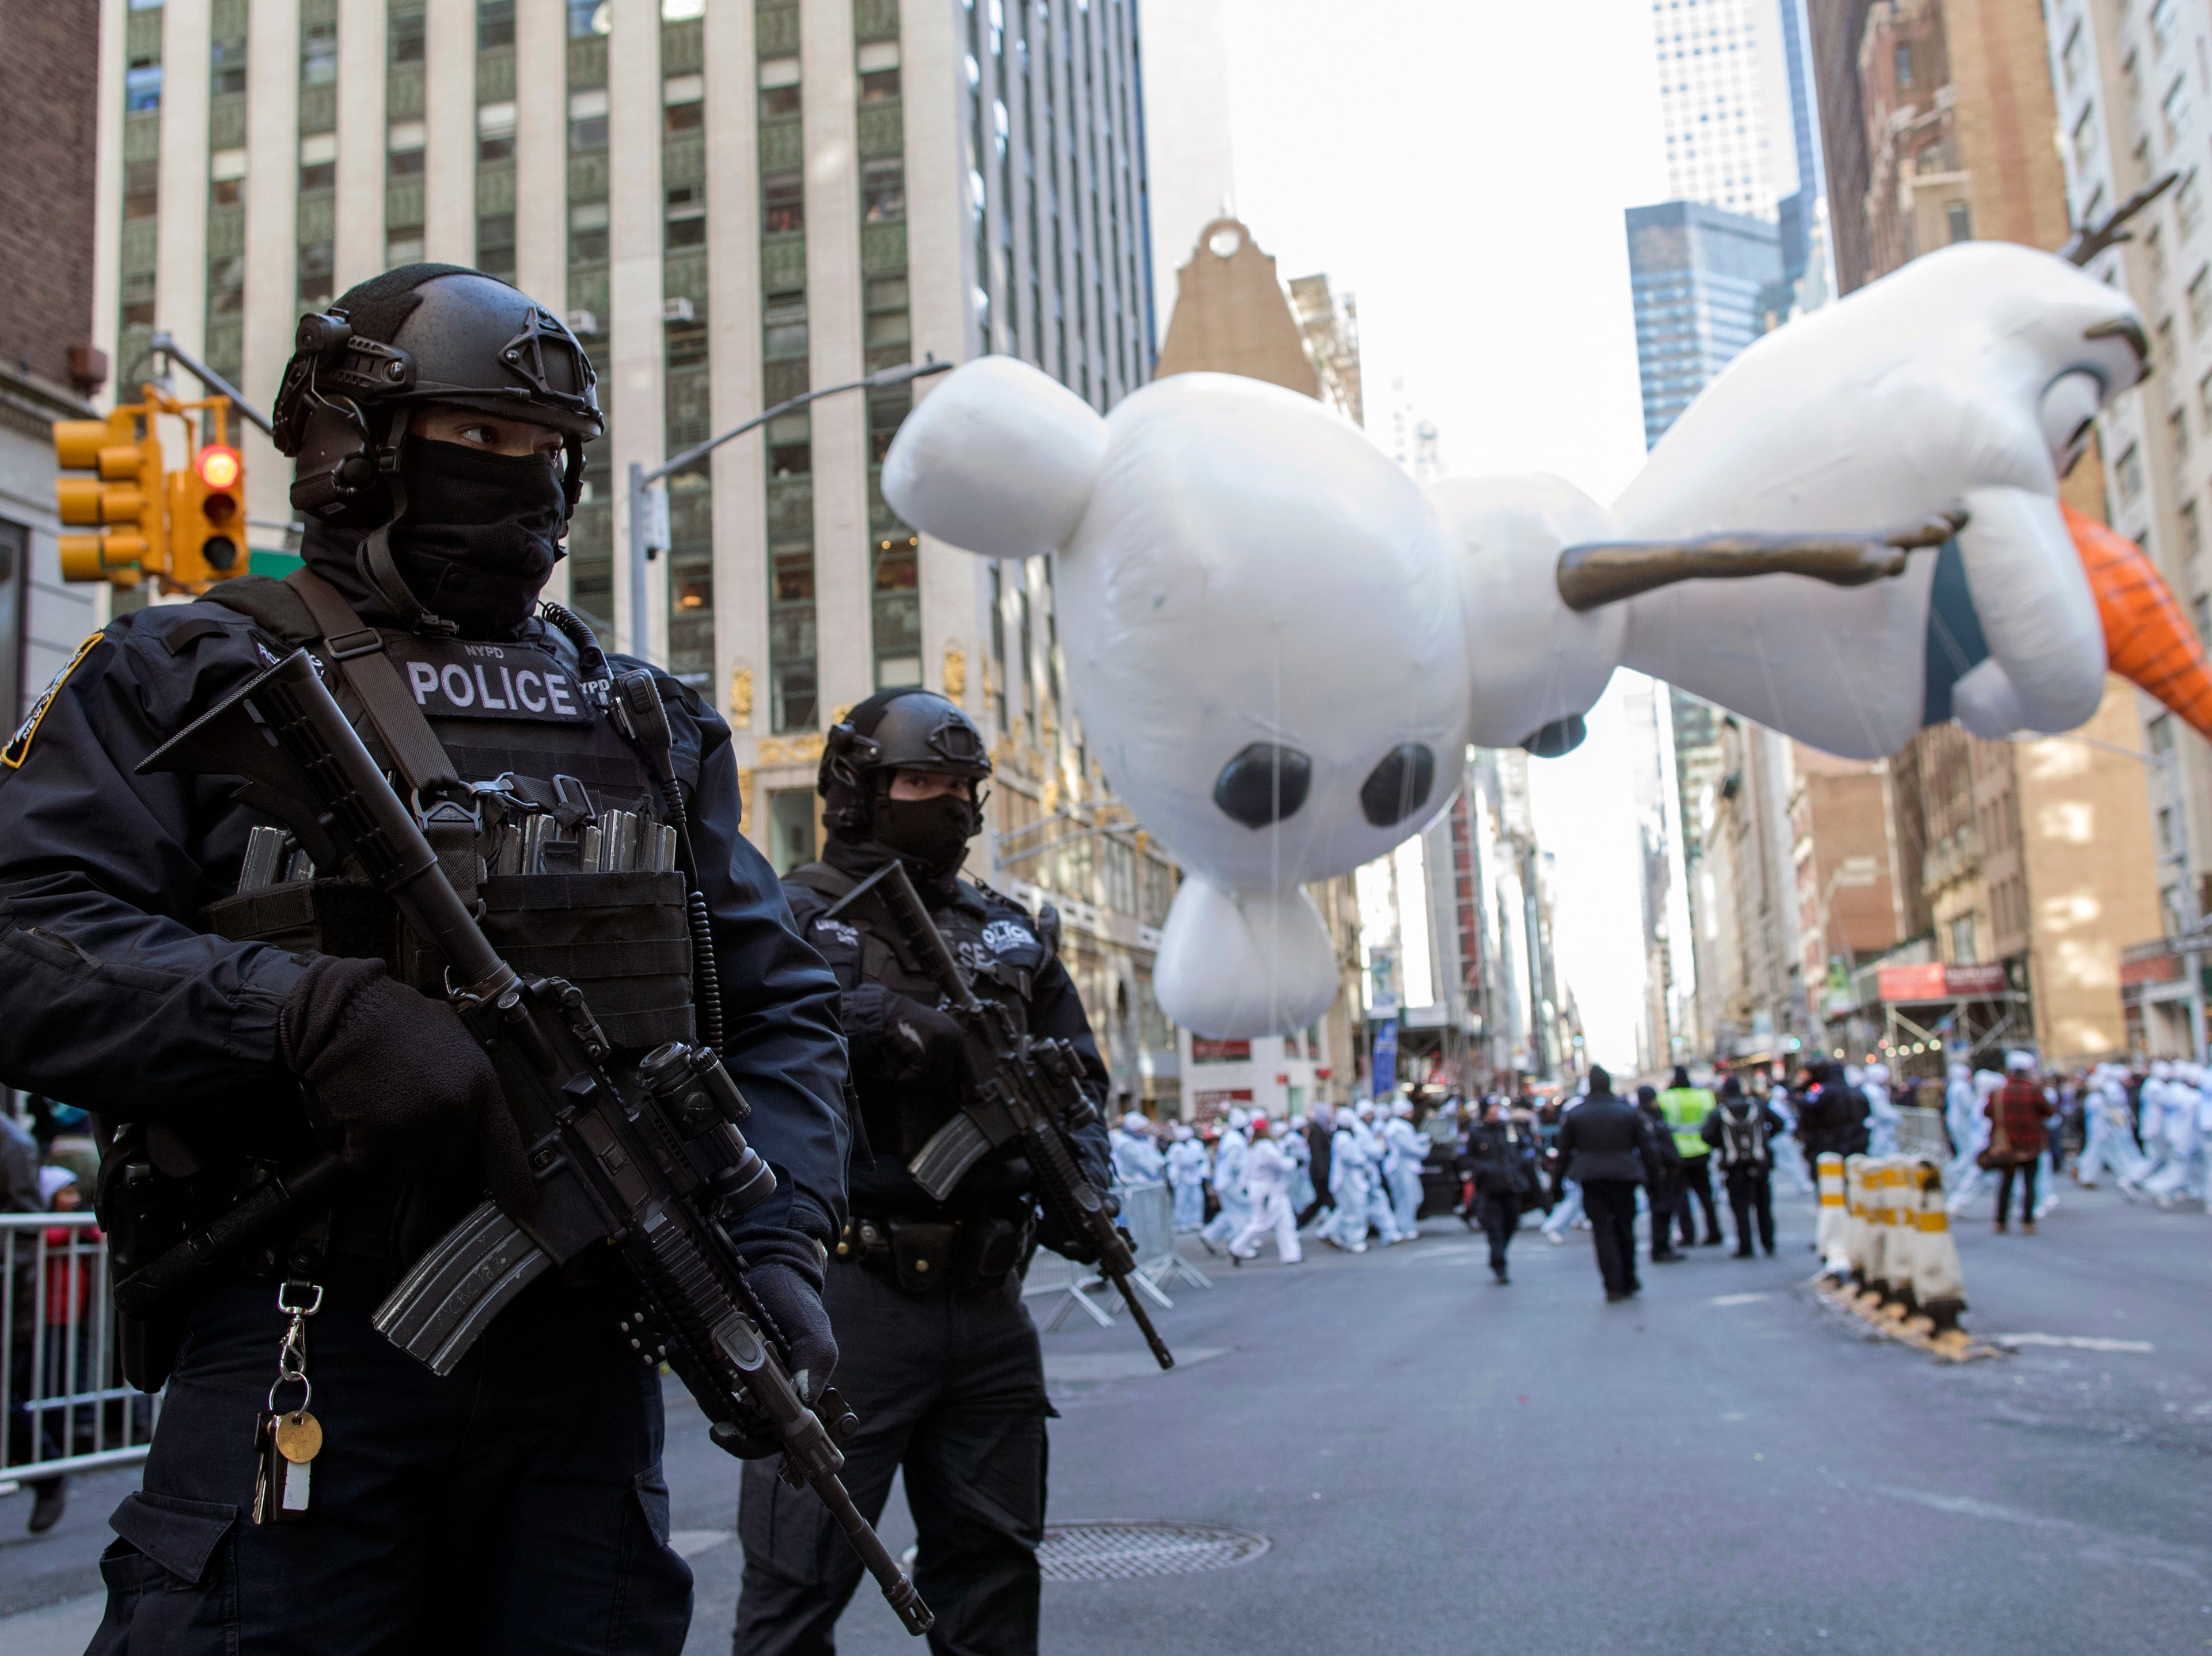 Heavily-armed police officers stand guard as the Olaf balloon floats down 6th Avenue during the 92nd annual Macy's Thanksgiving Day Parade, Thursday, Nov. 22, 2018, in New York.